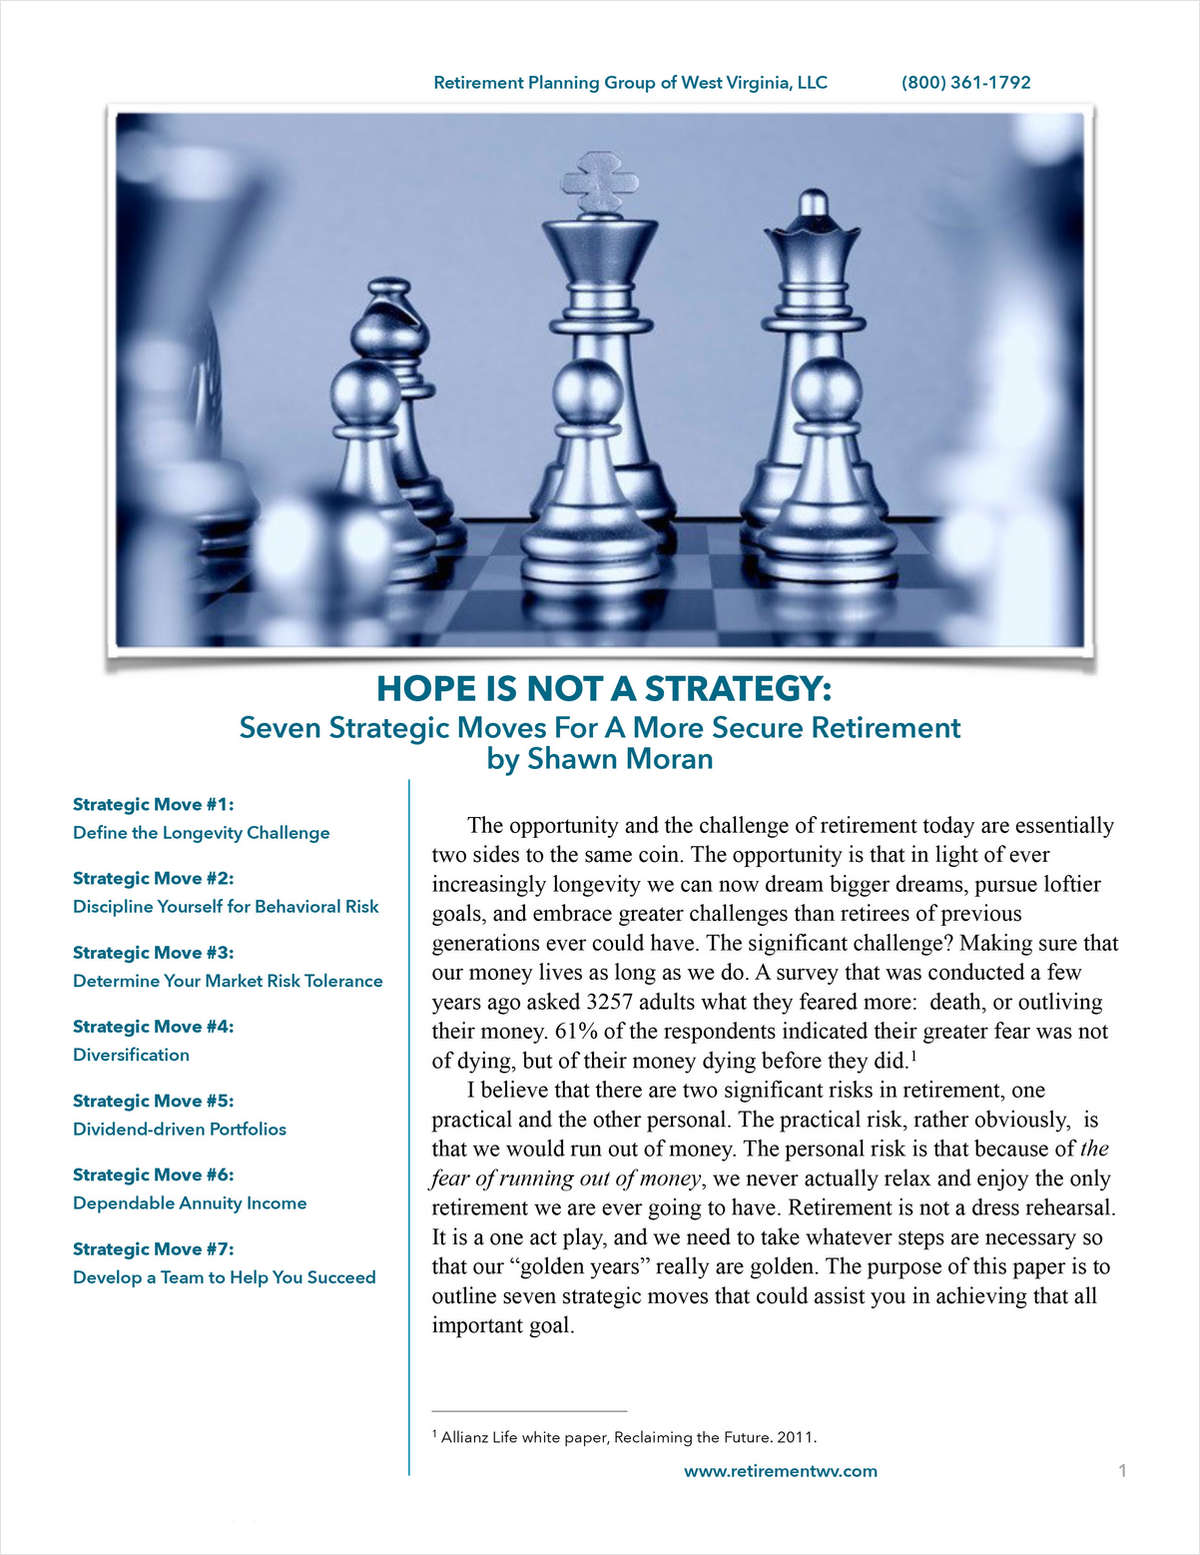 {Client Guide}: Seven Strategic Moves for a More Secure Retirement